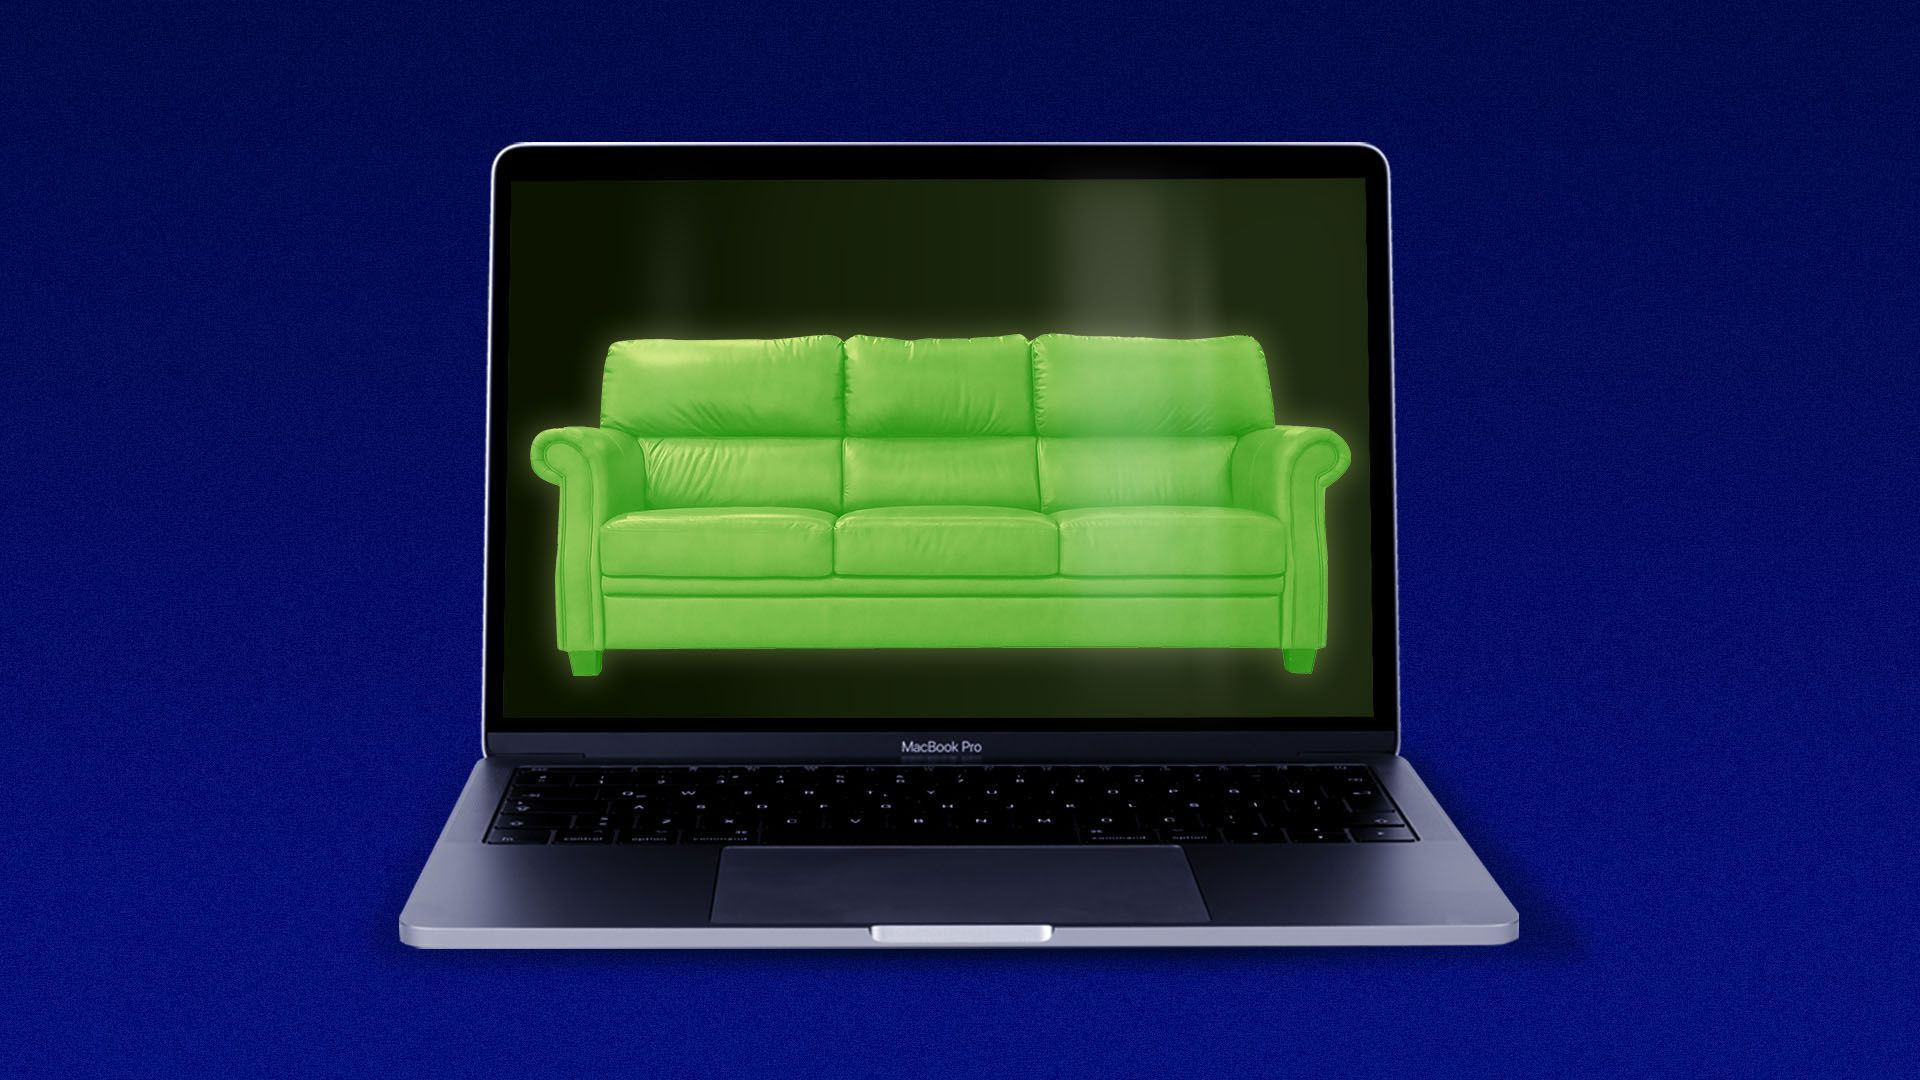 Illustration of a laptop with a couch on the screen